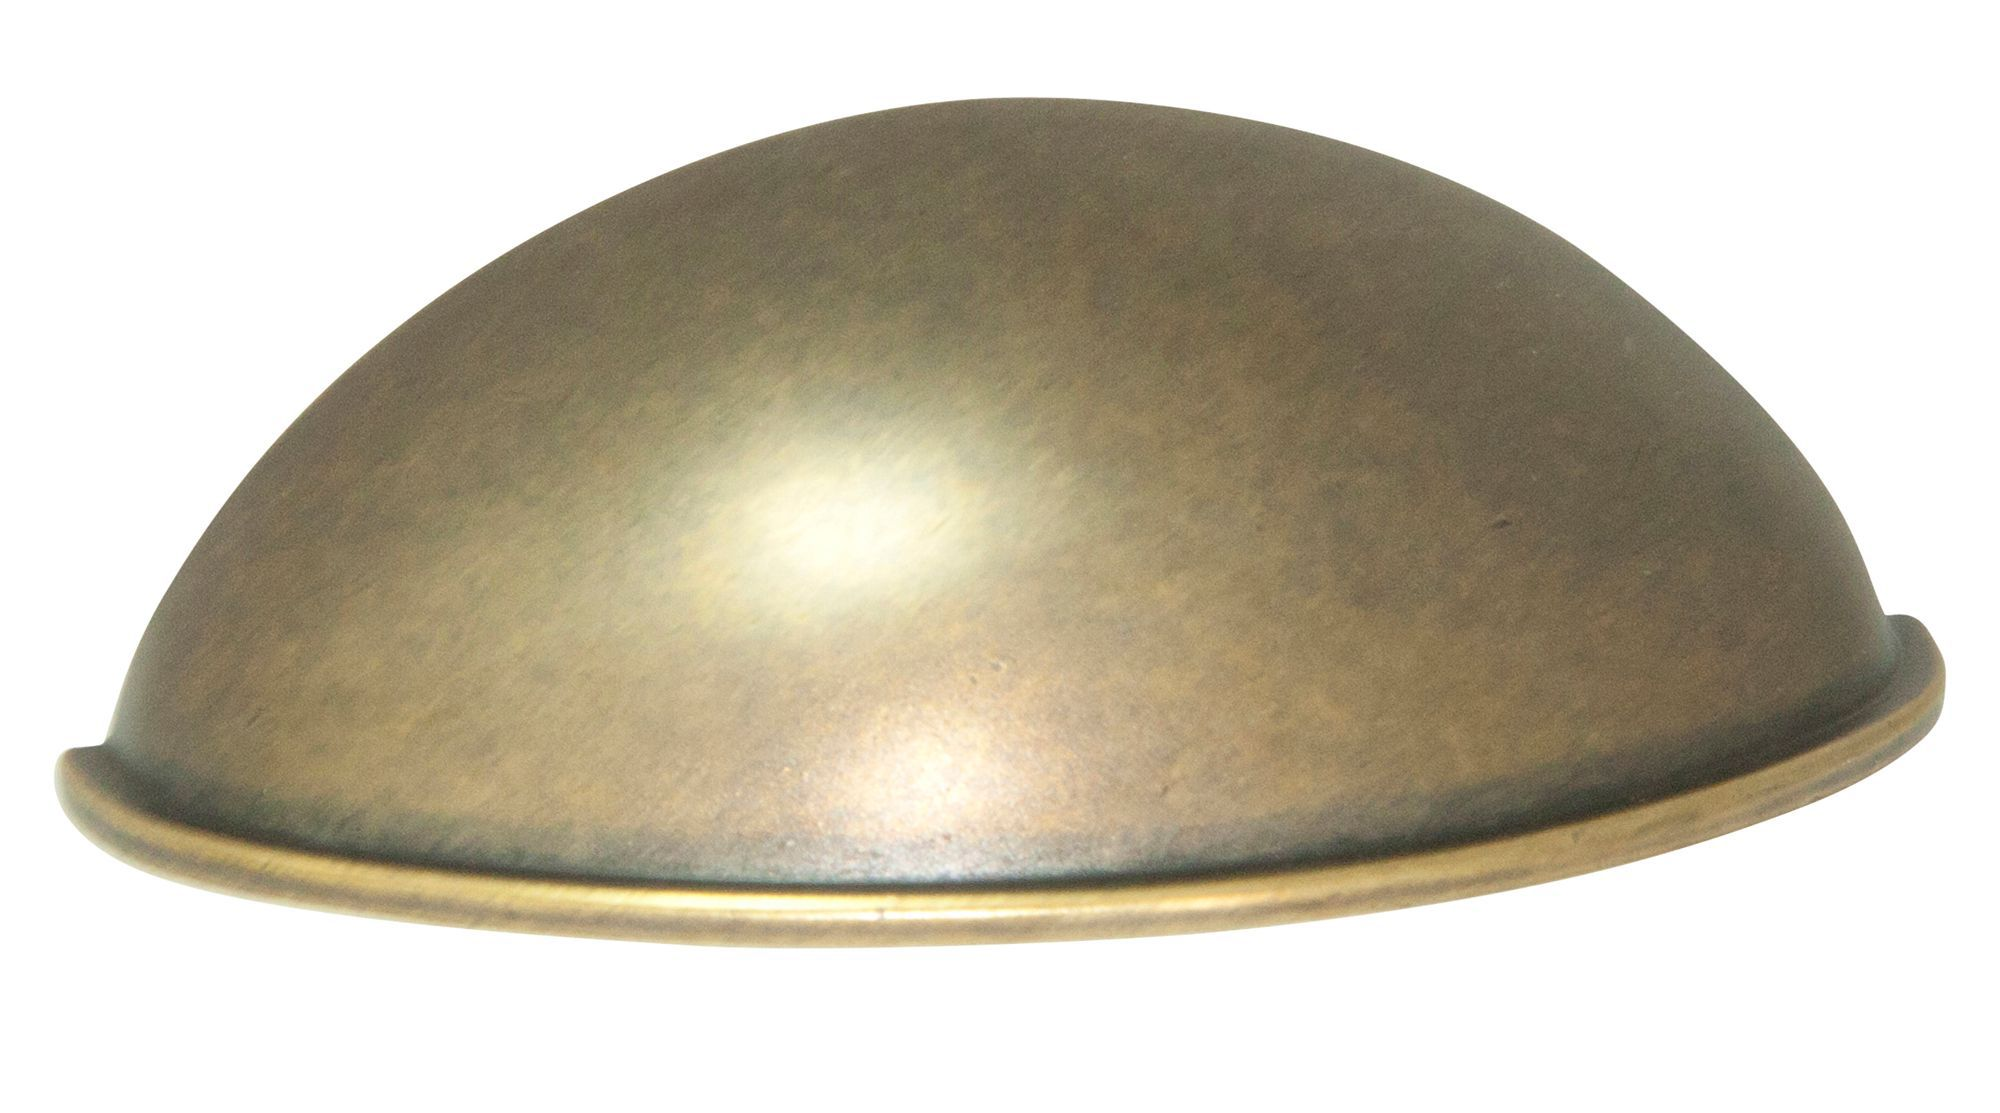 B&q Brass Effect Furniture Pull Handle (l)79.6mm, Pack Of 1